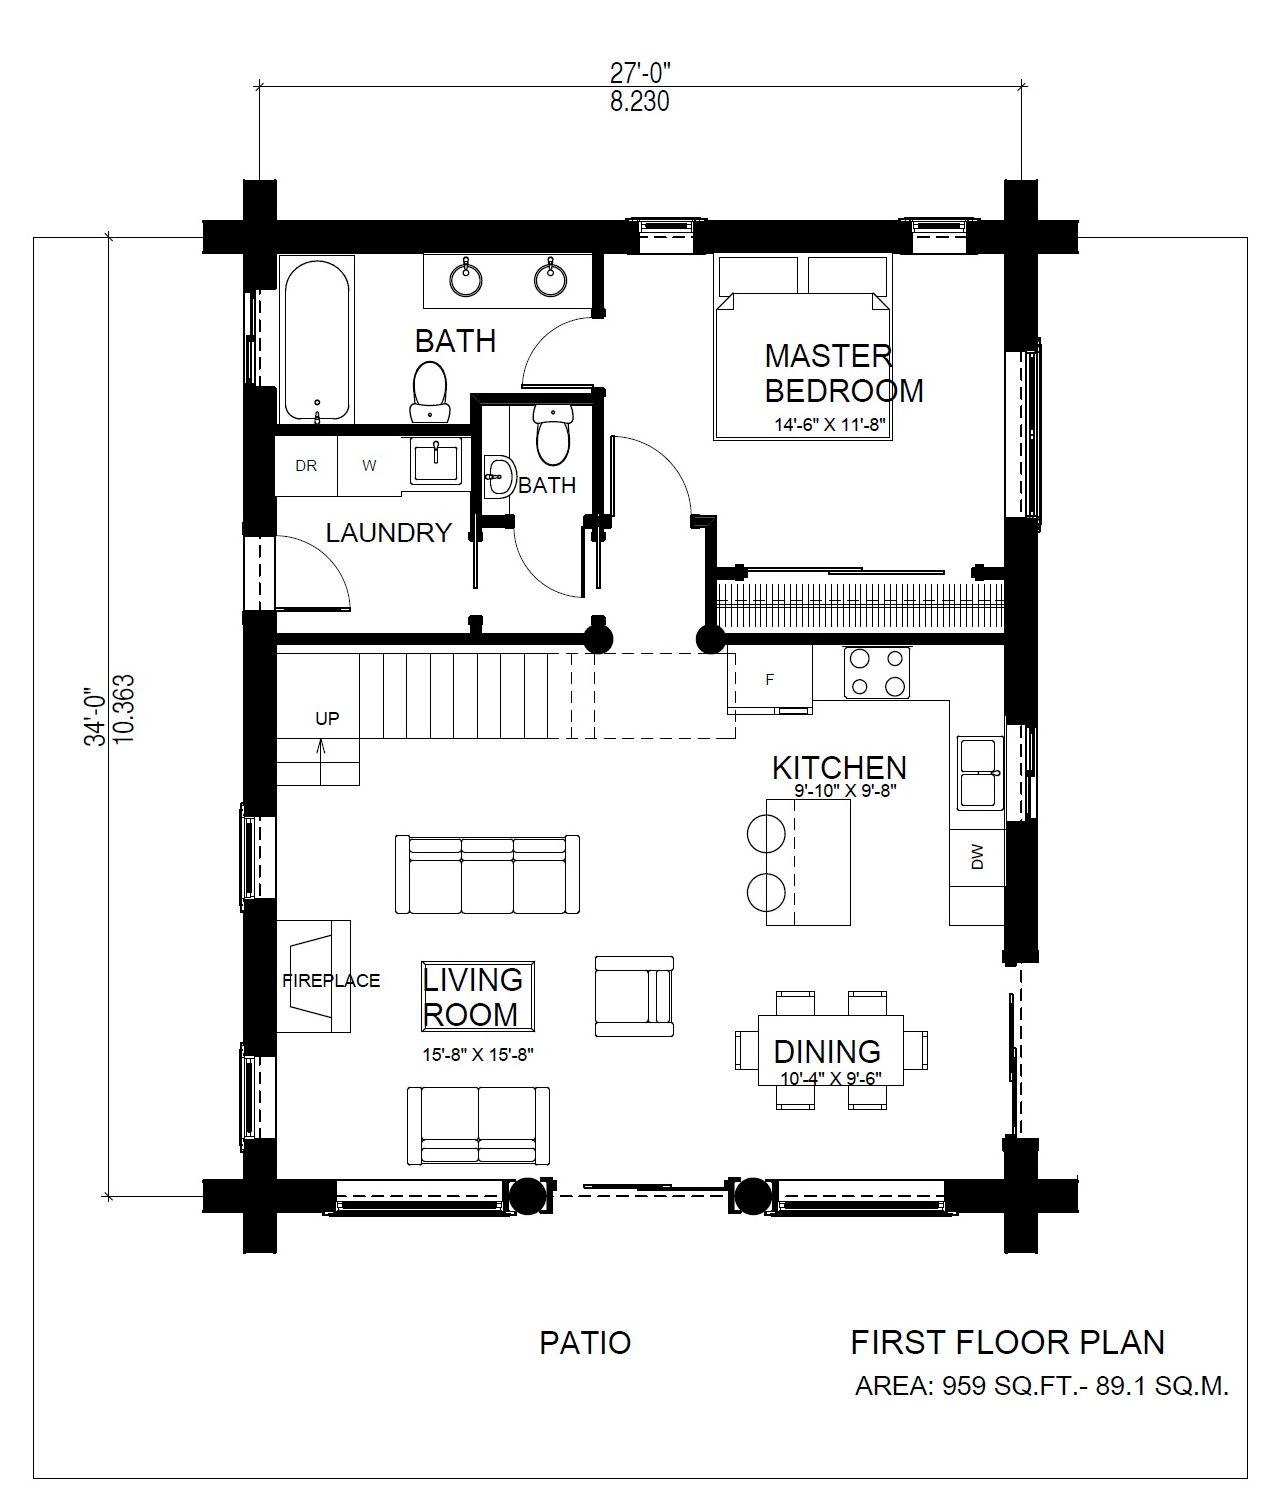 Log home floor plans bc for Log home plans canada